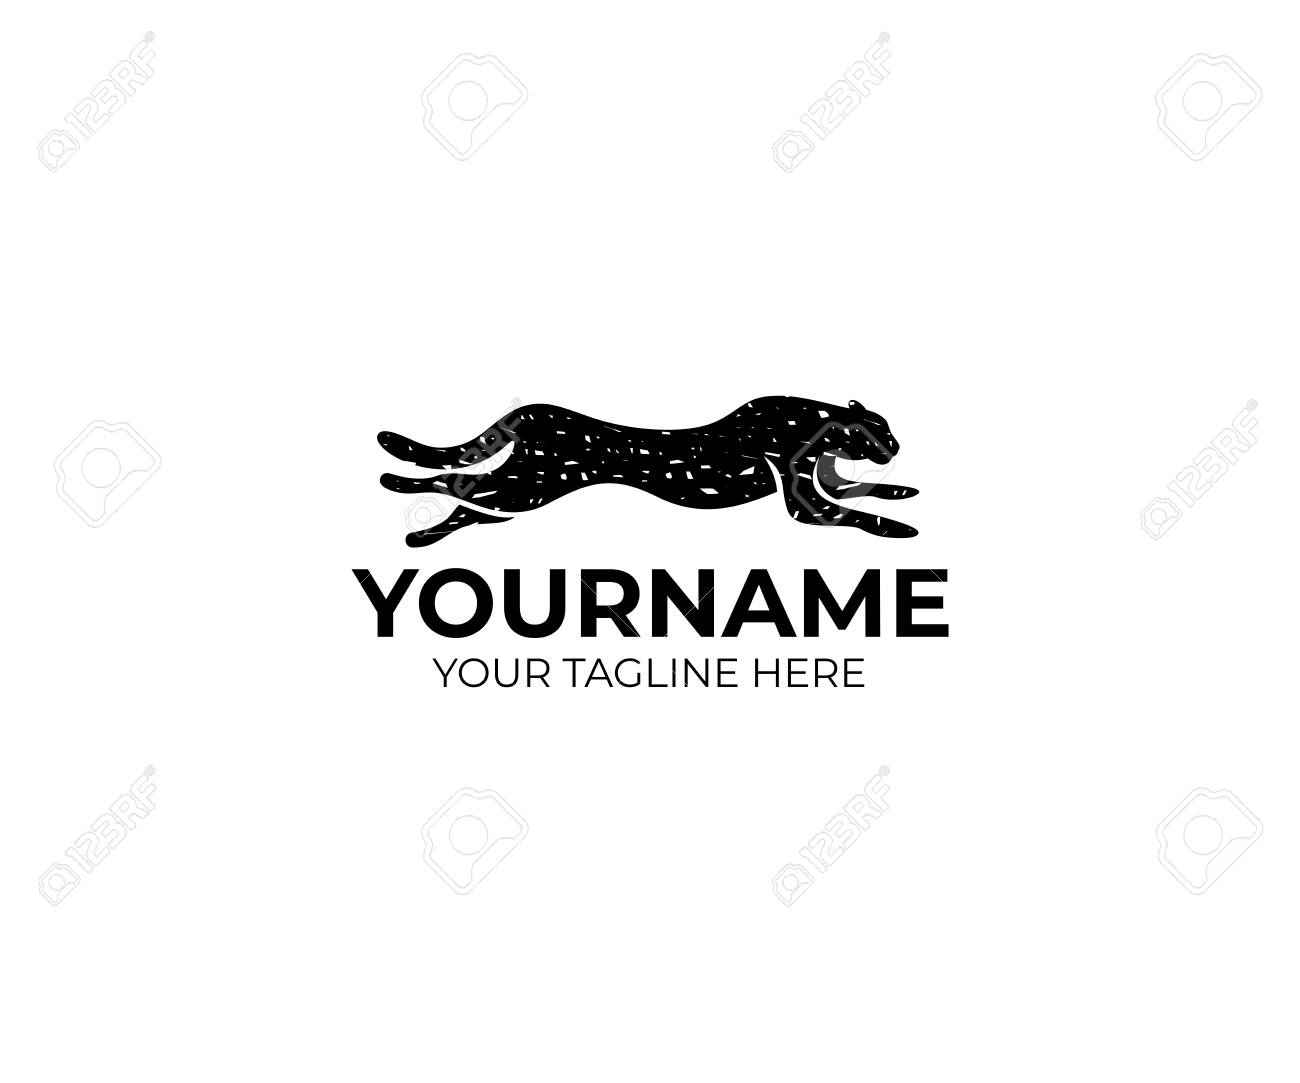 running cheetah logo template animal vector design predator royalty free cliparts vectors and stock illustration image 93158246 running cheetah logo template animal vector design predator